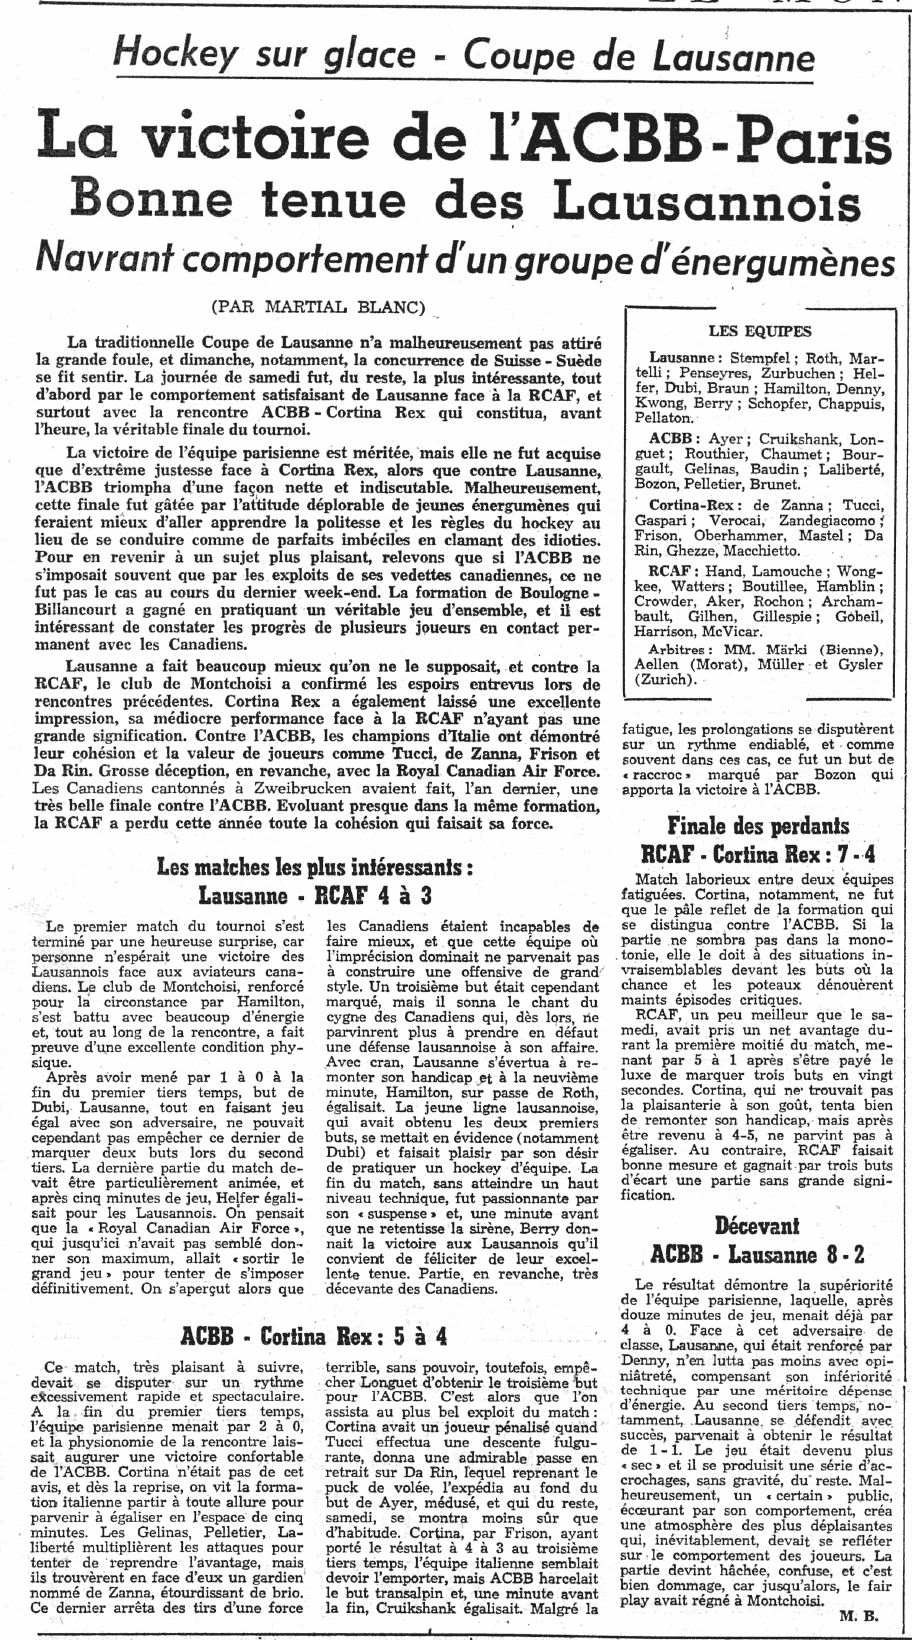 Edition  Nov 14, 1961.png